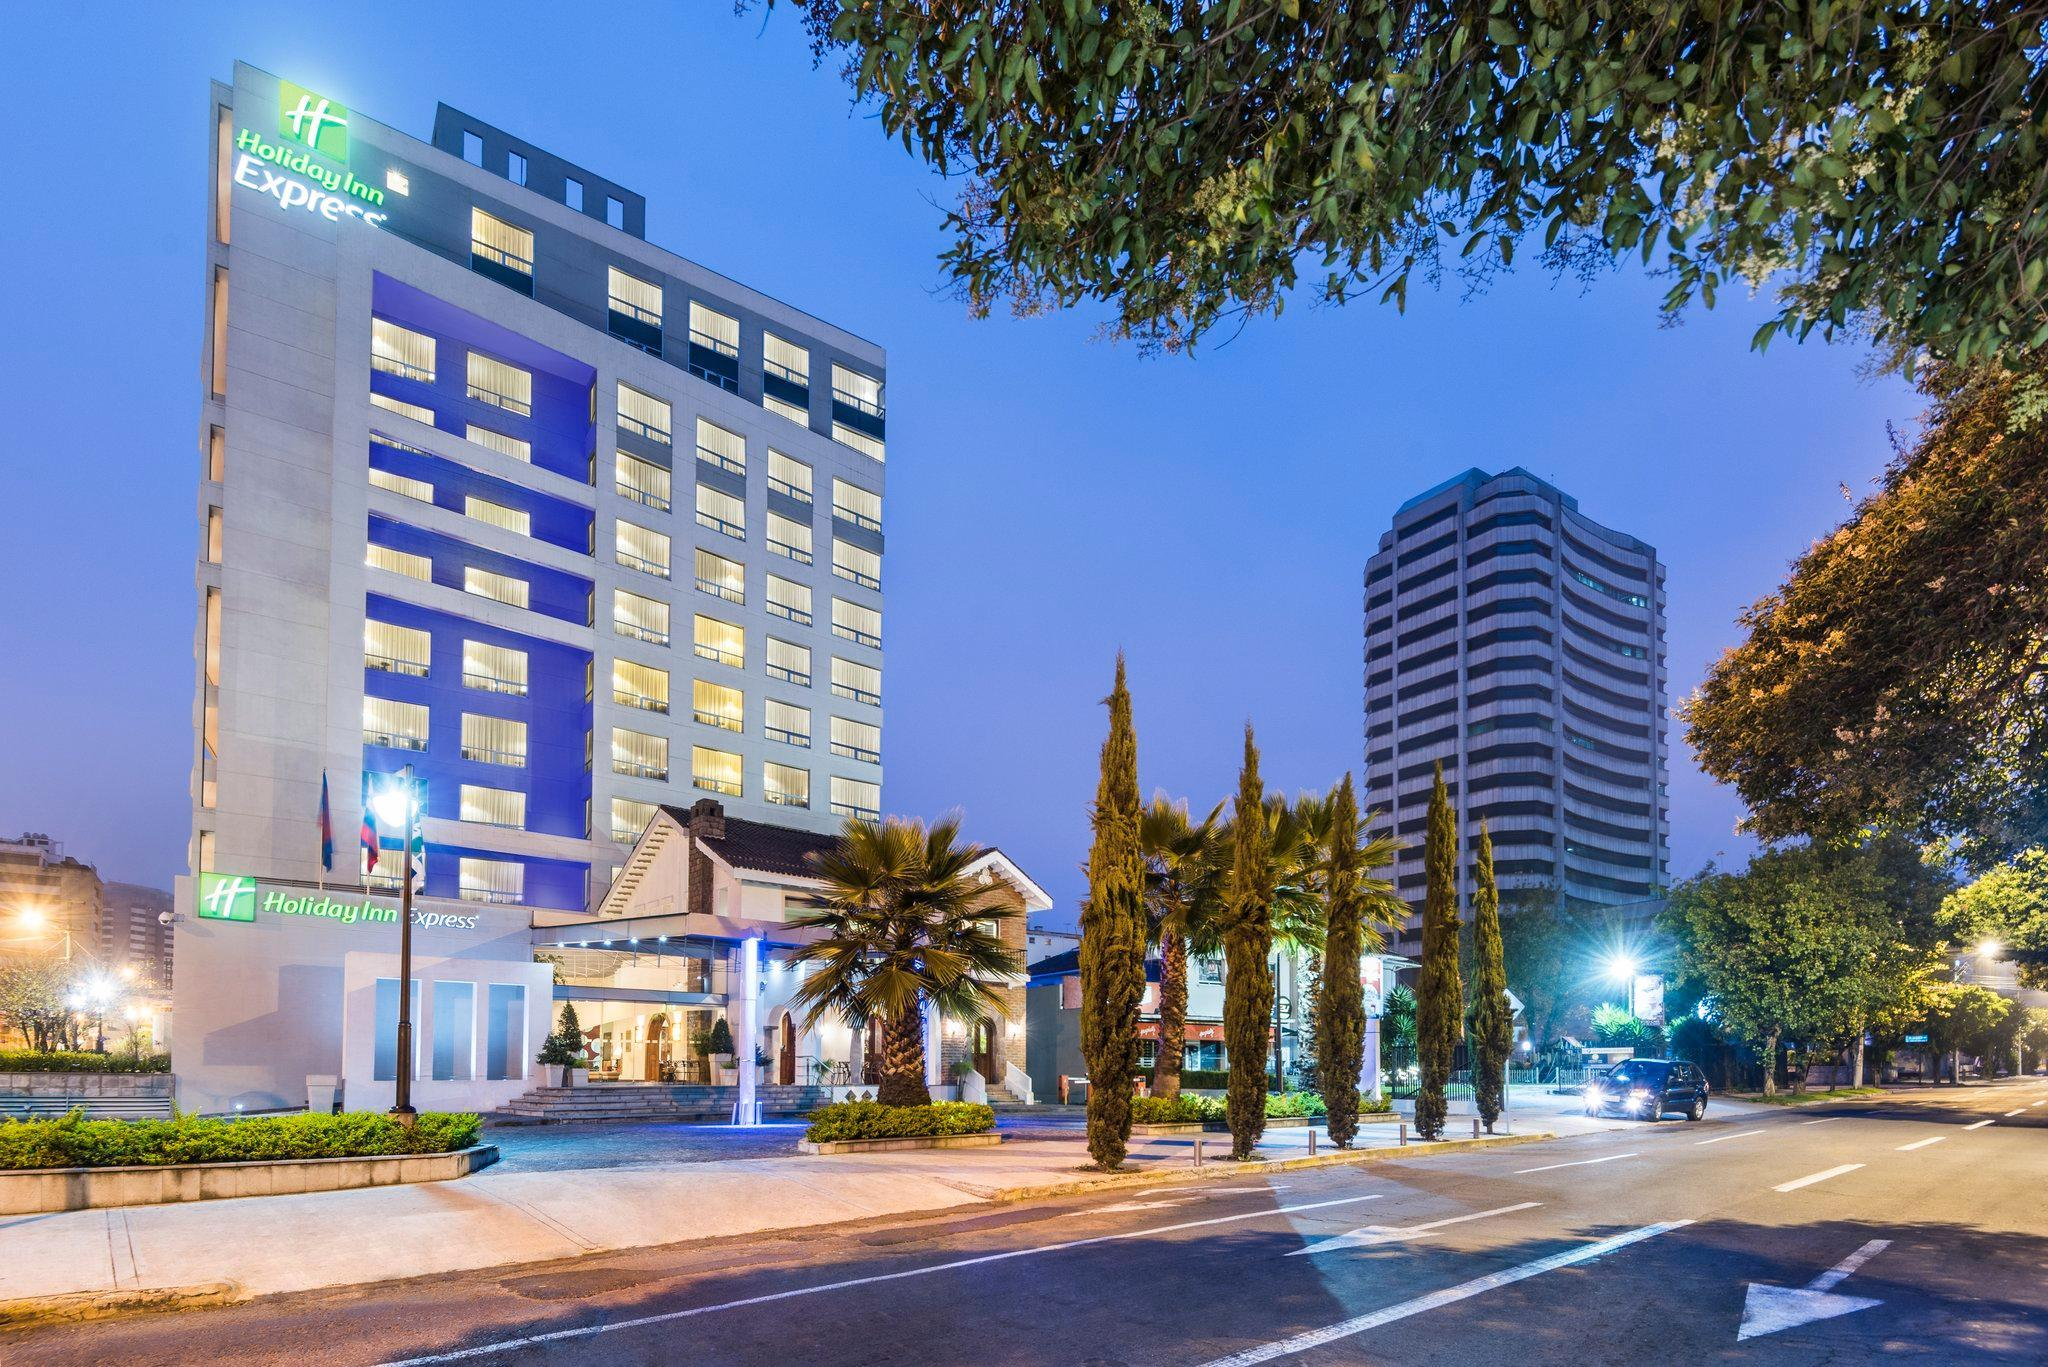 Holiday Inn Express Hotels And Suites Quito